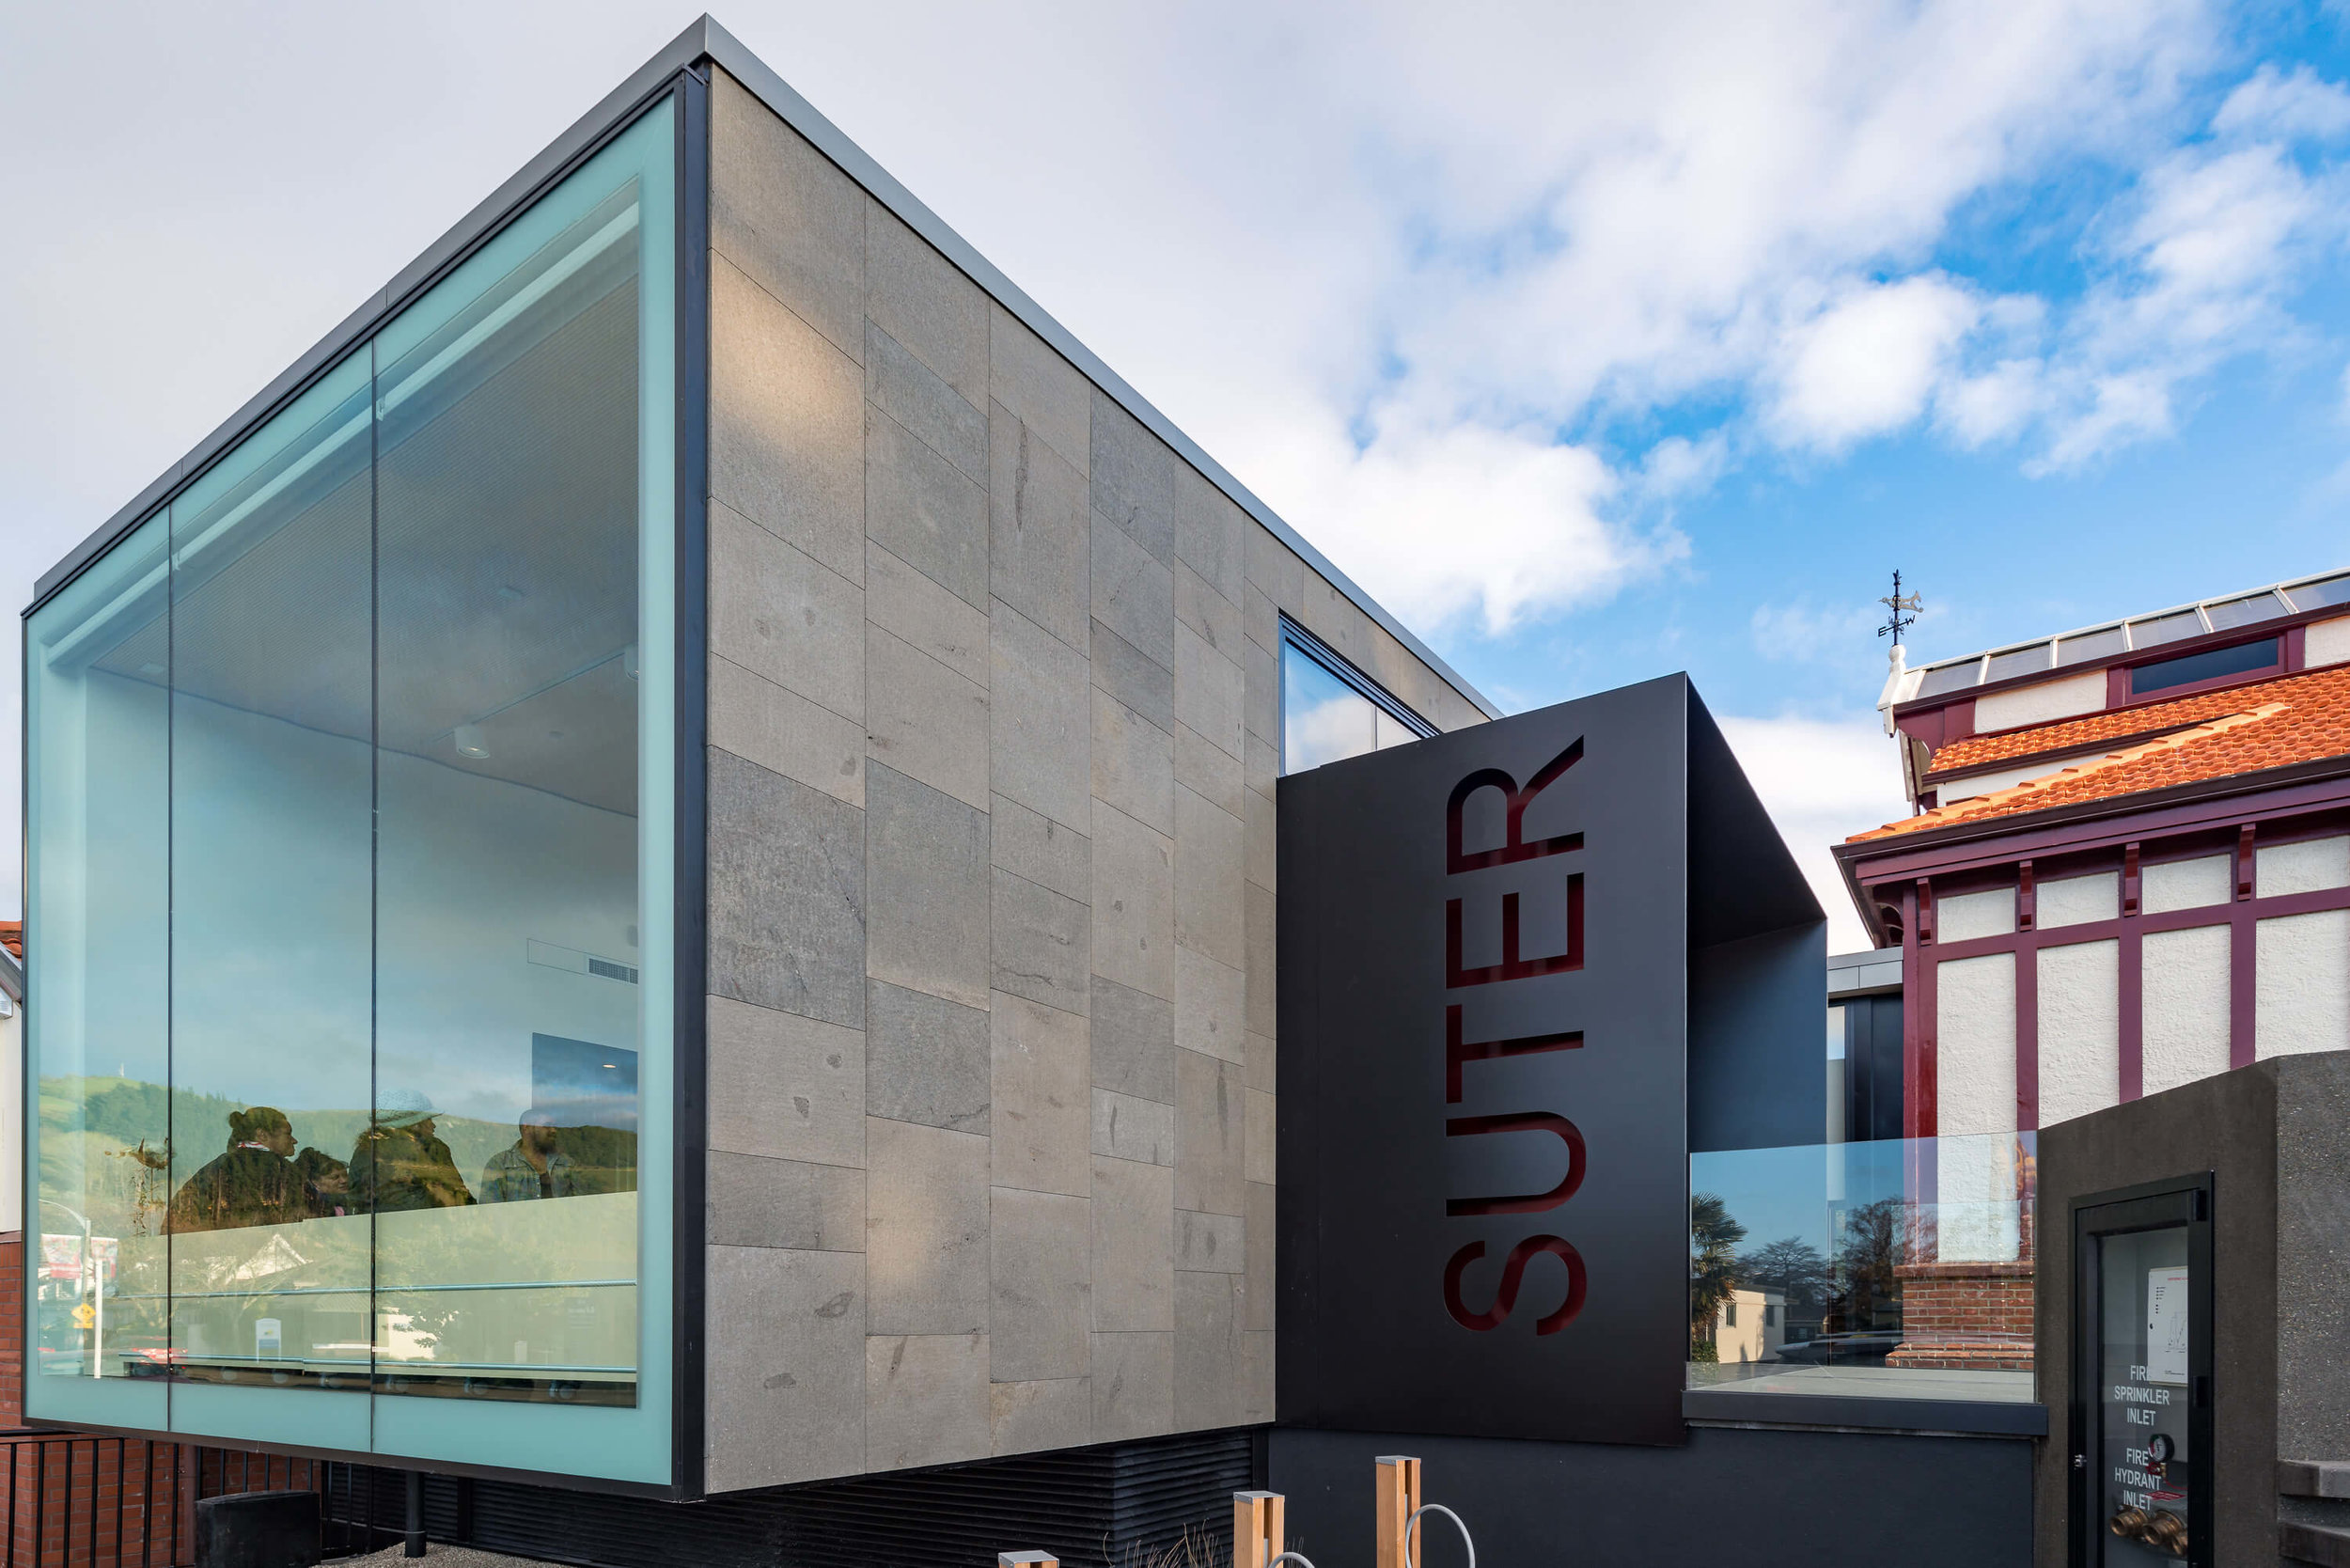 new entrance to The Suter in Nelson